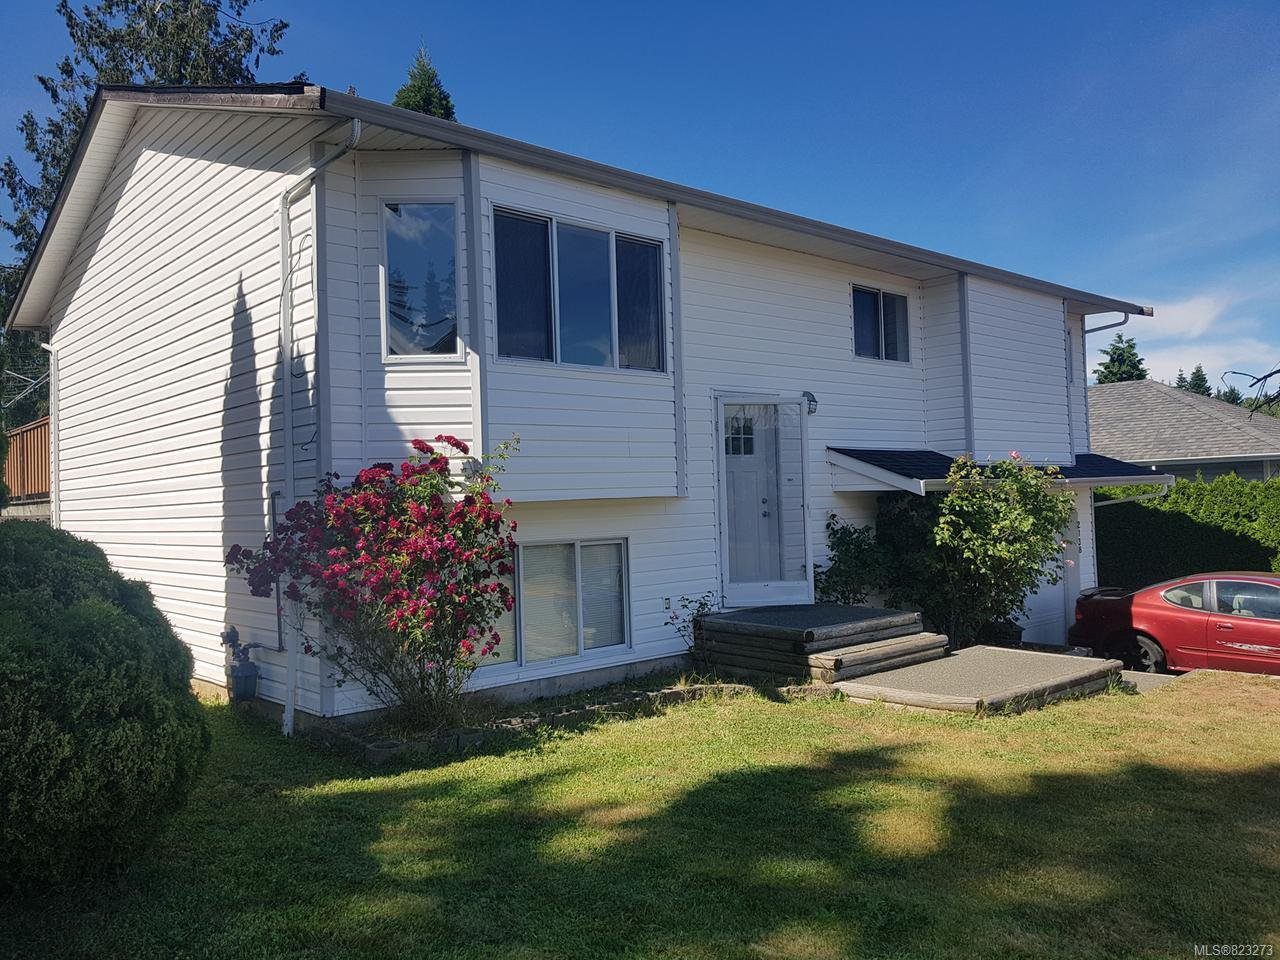 Main Photo: 2138 E 9th St in COURTENAY: CV Courtenay East House for sale (Comox Valley)  : MLS®# 823273